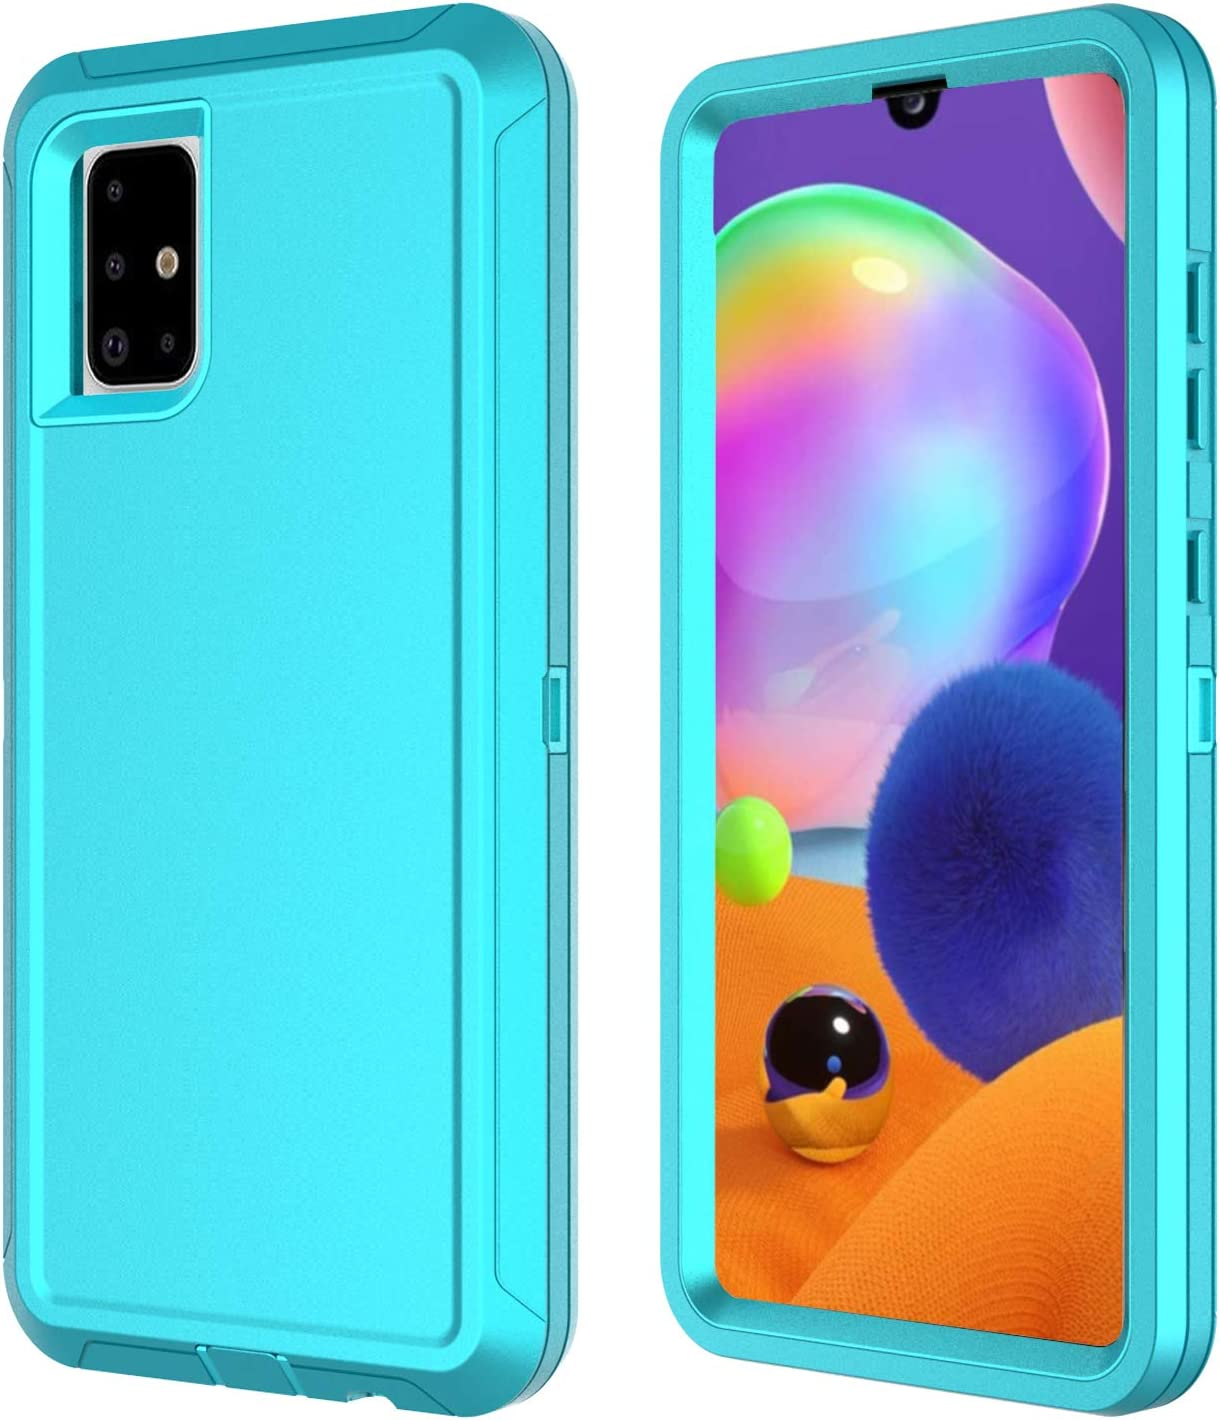 Aimoll-88 Galaxy A31 Case, with Built-in Screen Protector 3in 1 Heavy Duty Shockproof Drop Protection Defender [NOT Fit for Galaxy A31 5G] Hard Hybrid Bumper Phone Cover for Samsung Galaxy A31